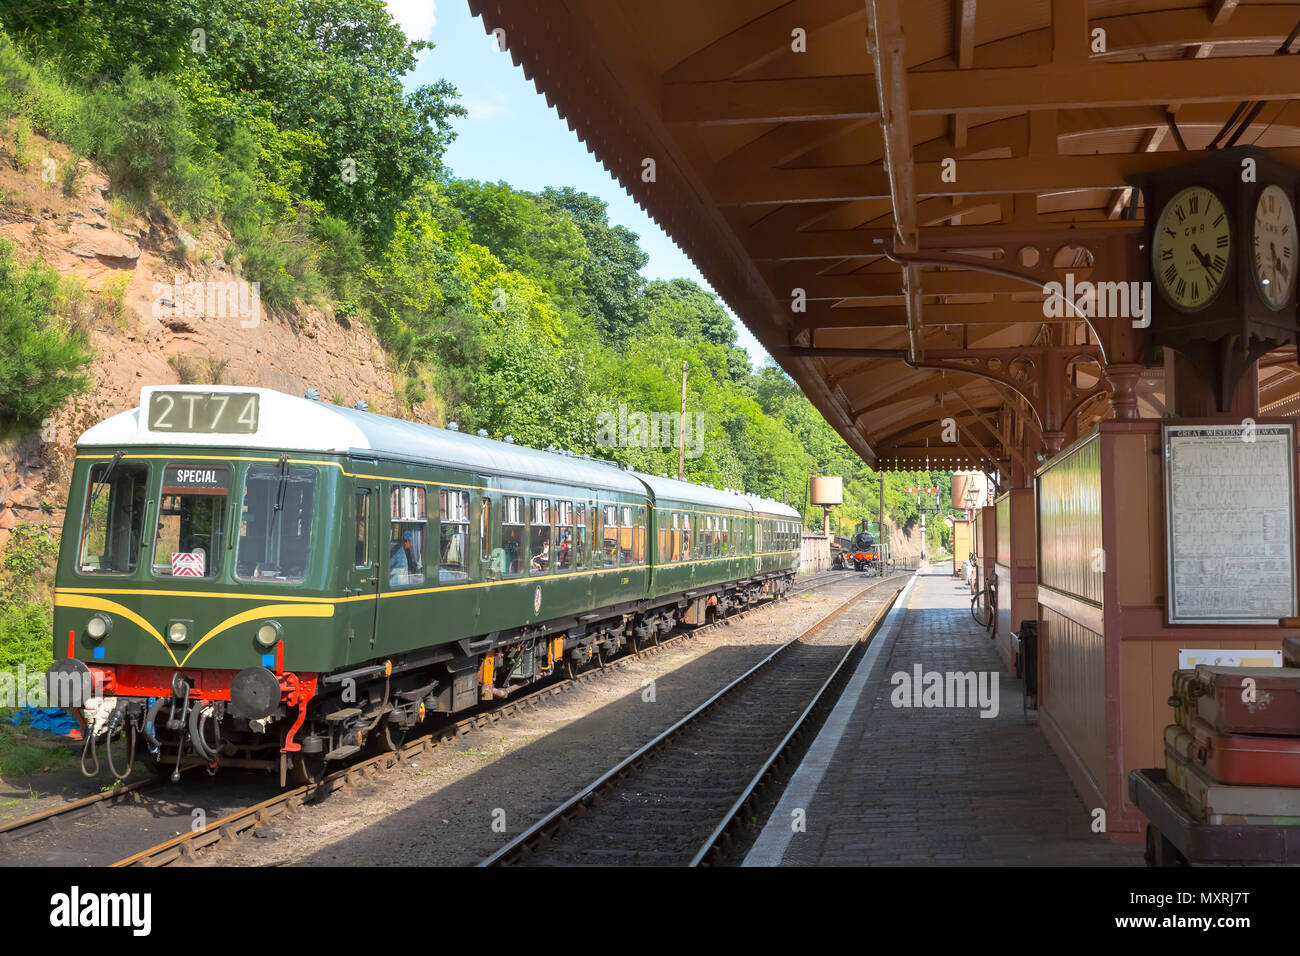 Preserved diesel locomotive on the track at the southern end of Severn Valley Railway's Bewdley station, Worcs. Ex-British railways Class 108 DMU. - Stock Image